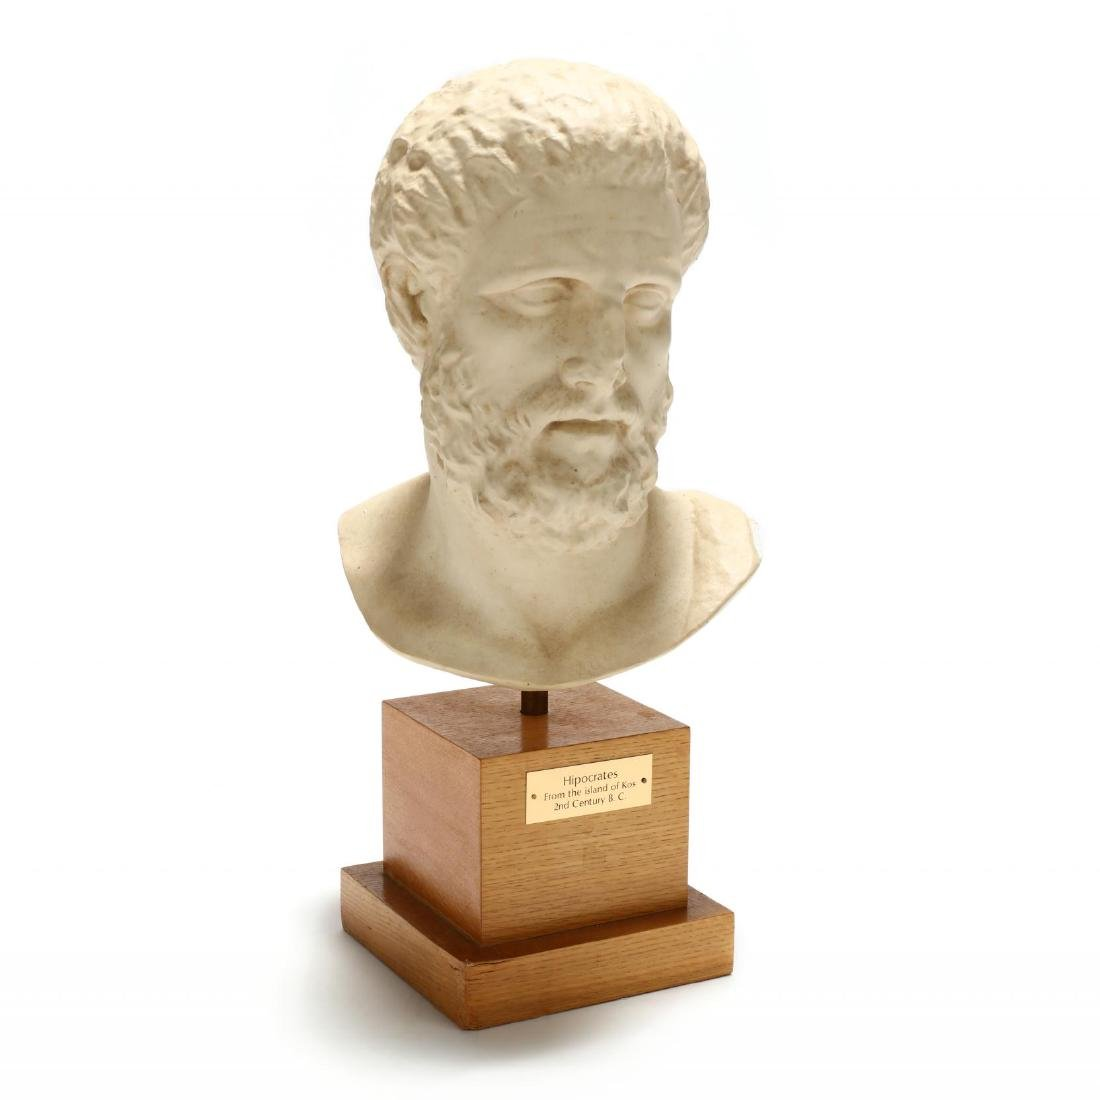 Contemporary Large Plaster Bust of Hippocrates